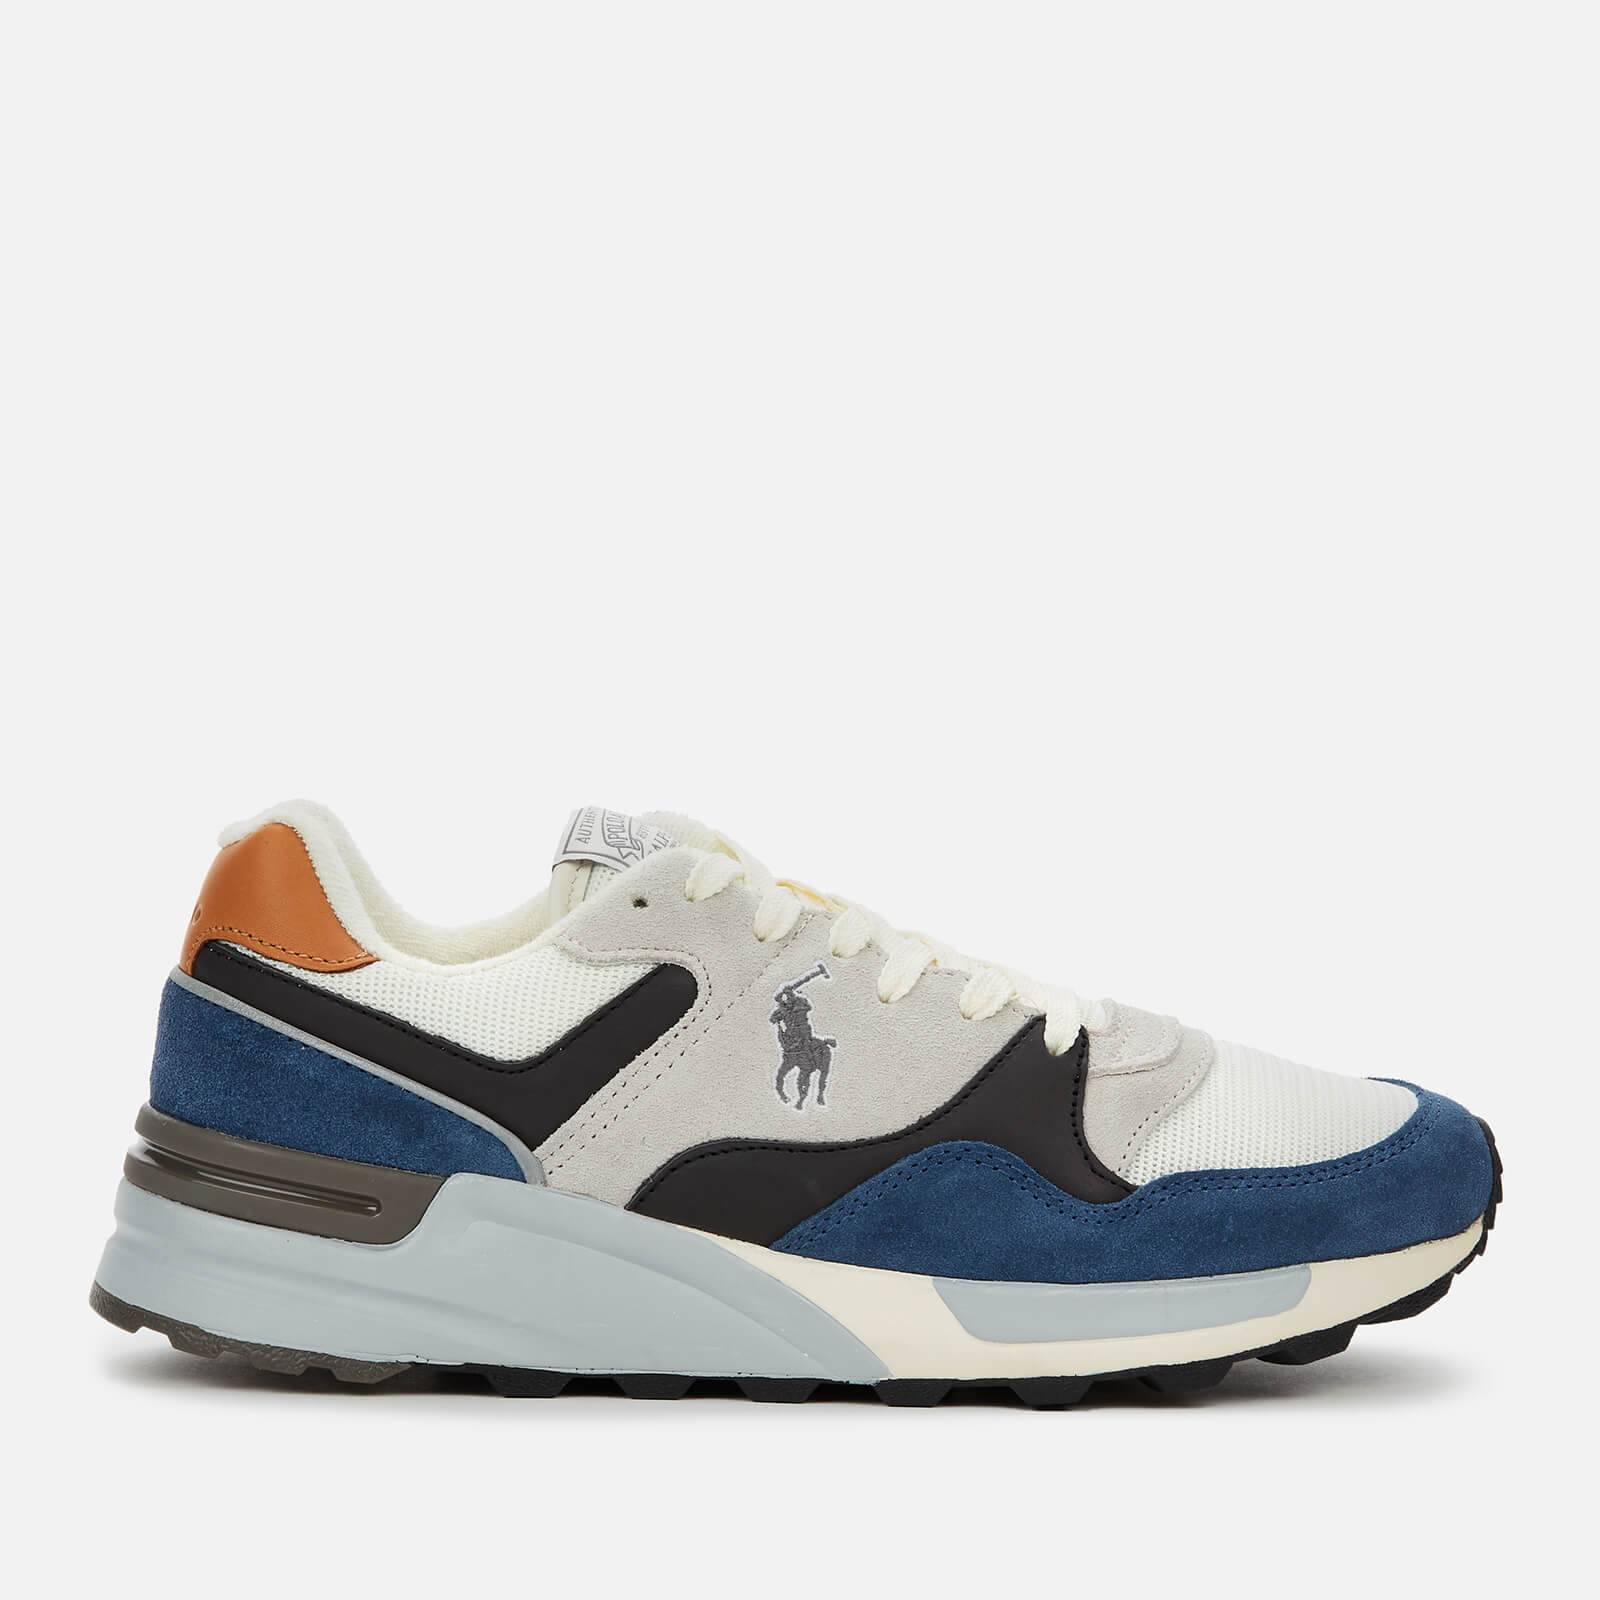 Ralph Lauren Polo Ralph Lauren Men's Trackstar Pony Suede/Leather/Mesh Running Style Trainers - Vintage Indigo/Skyline - UK 8